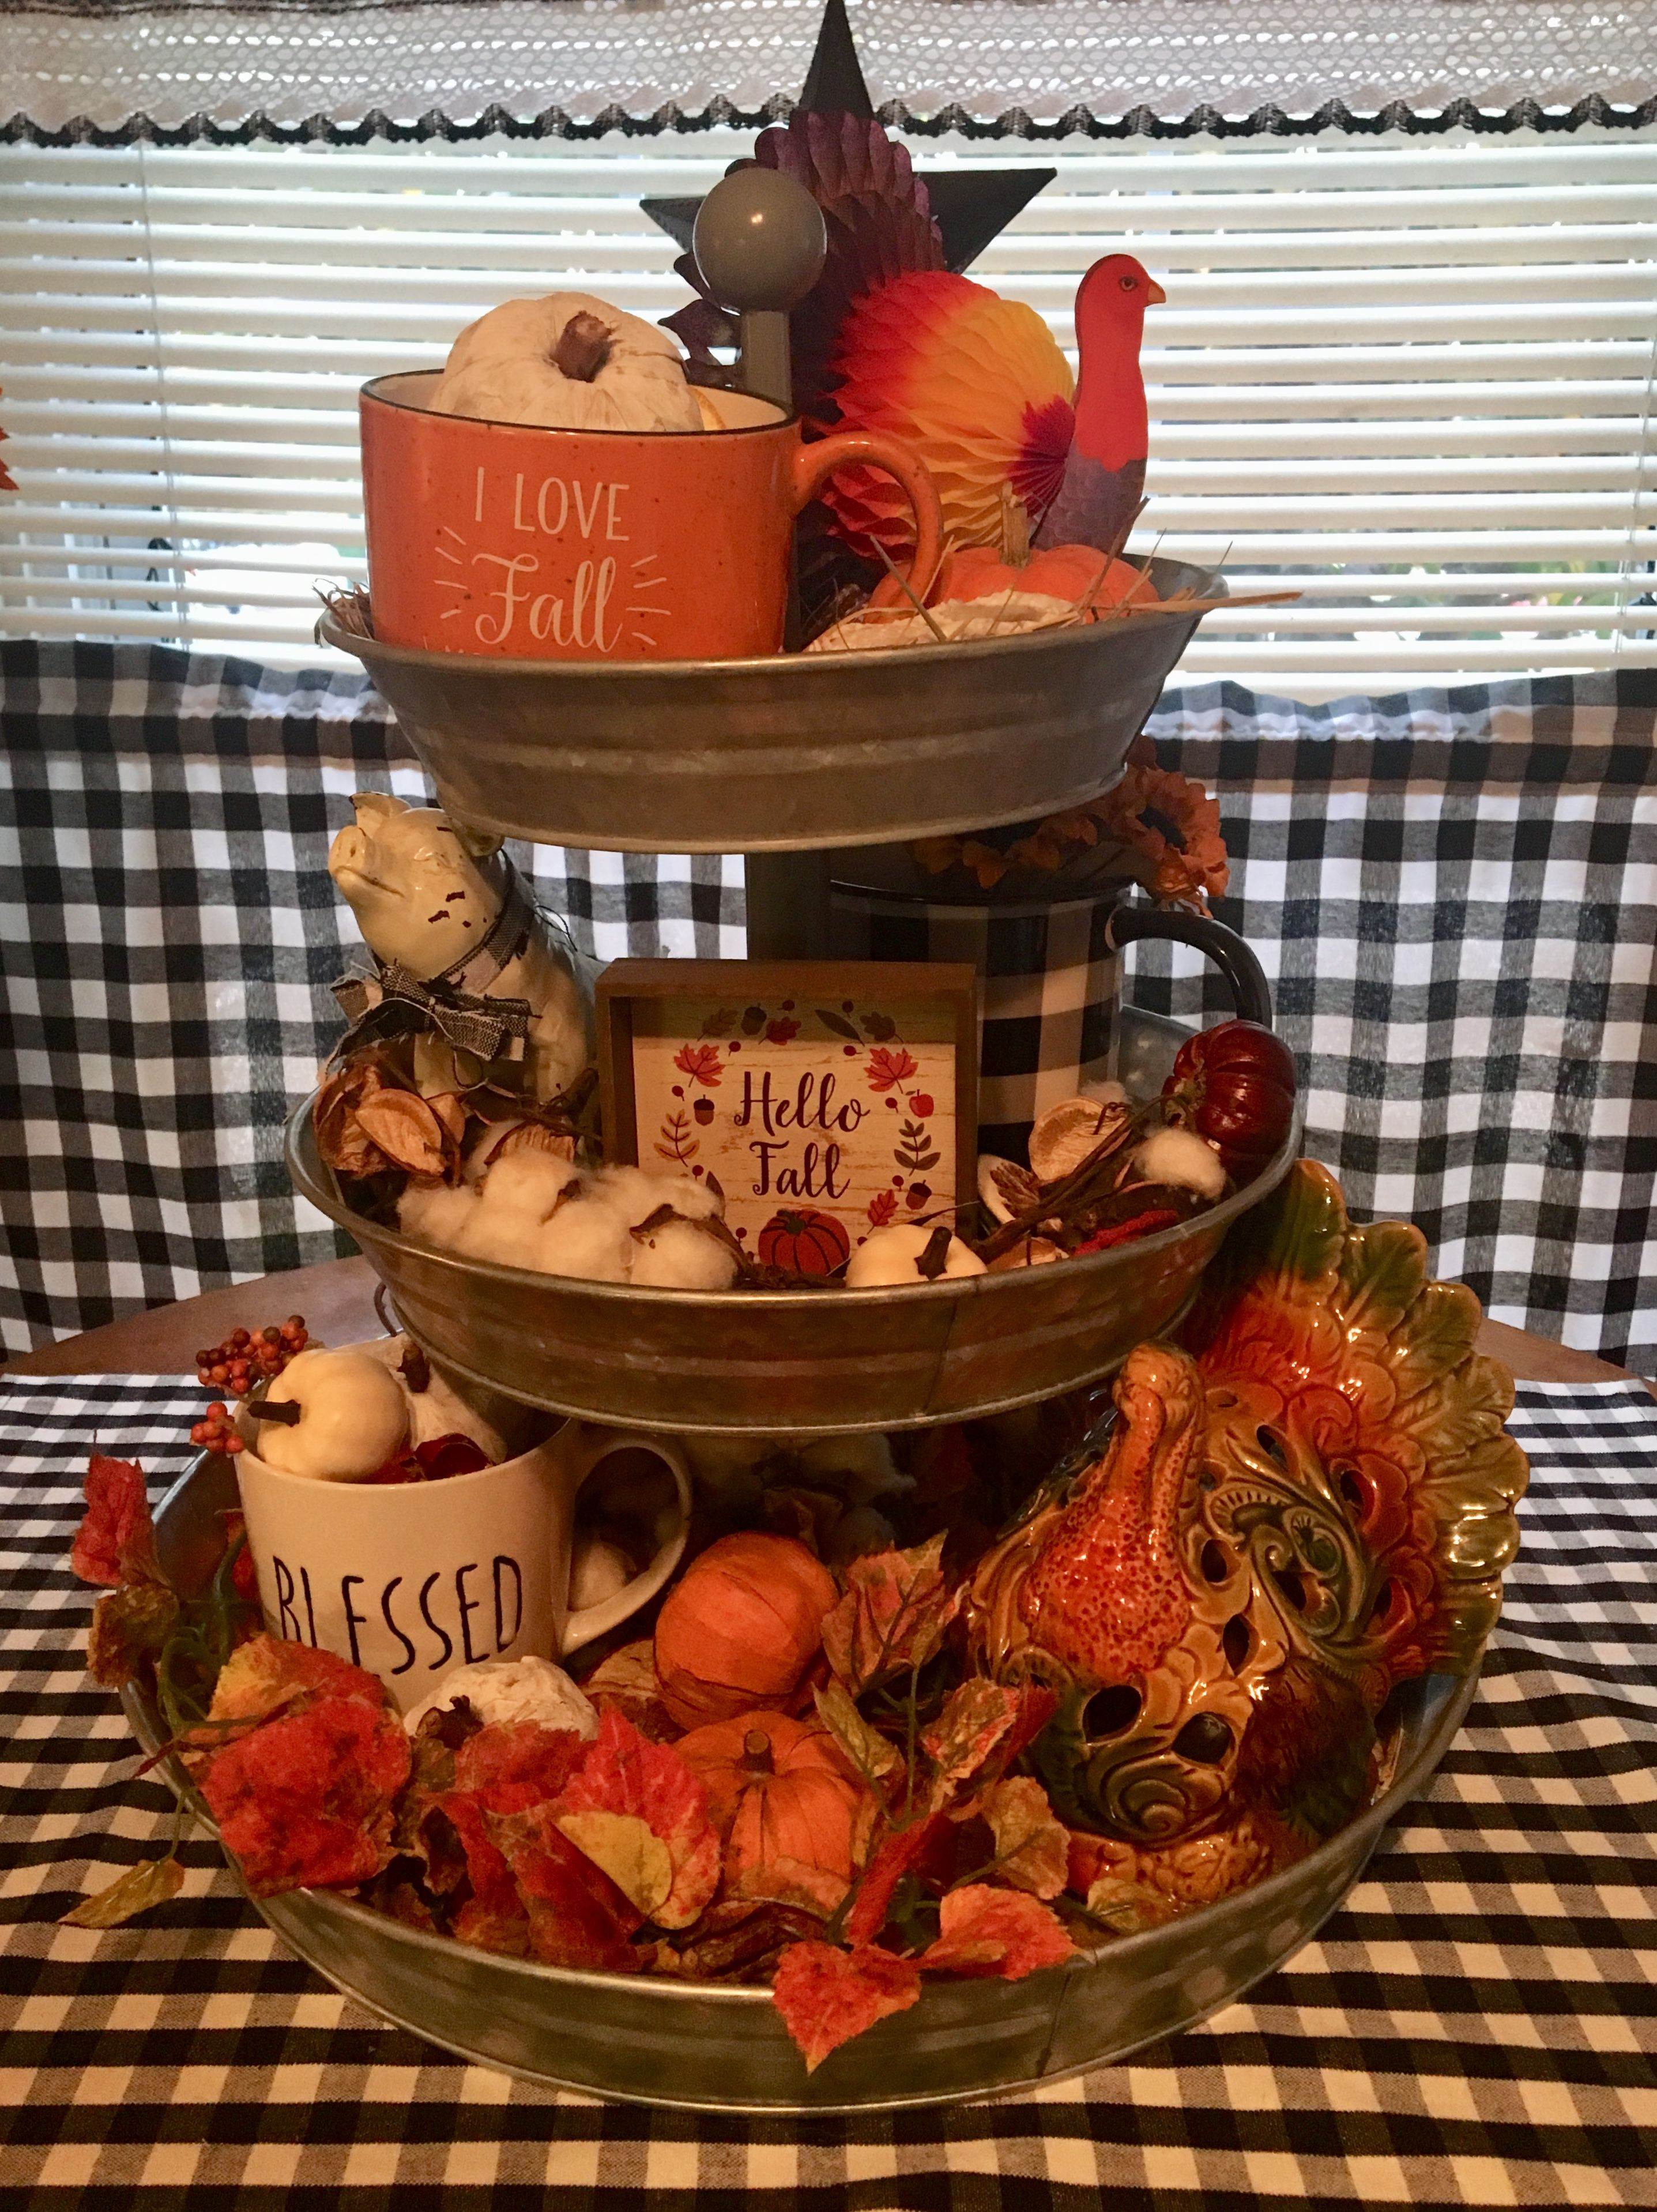 Pin by Mary Peace on Table centerpiece Tiered tray decor